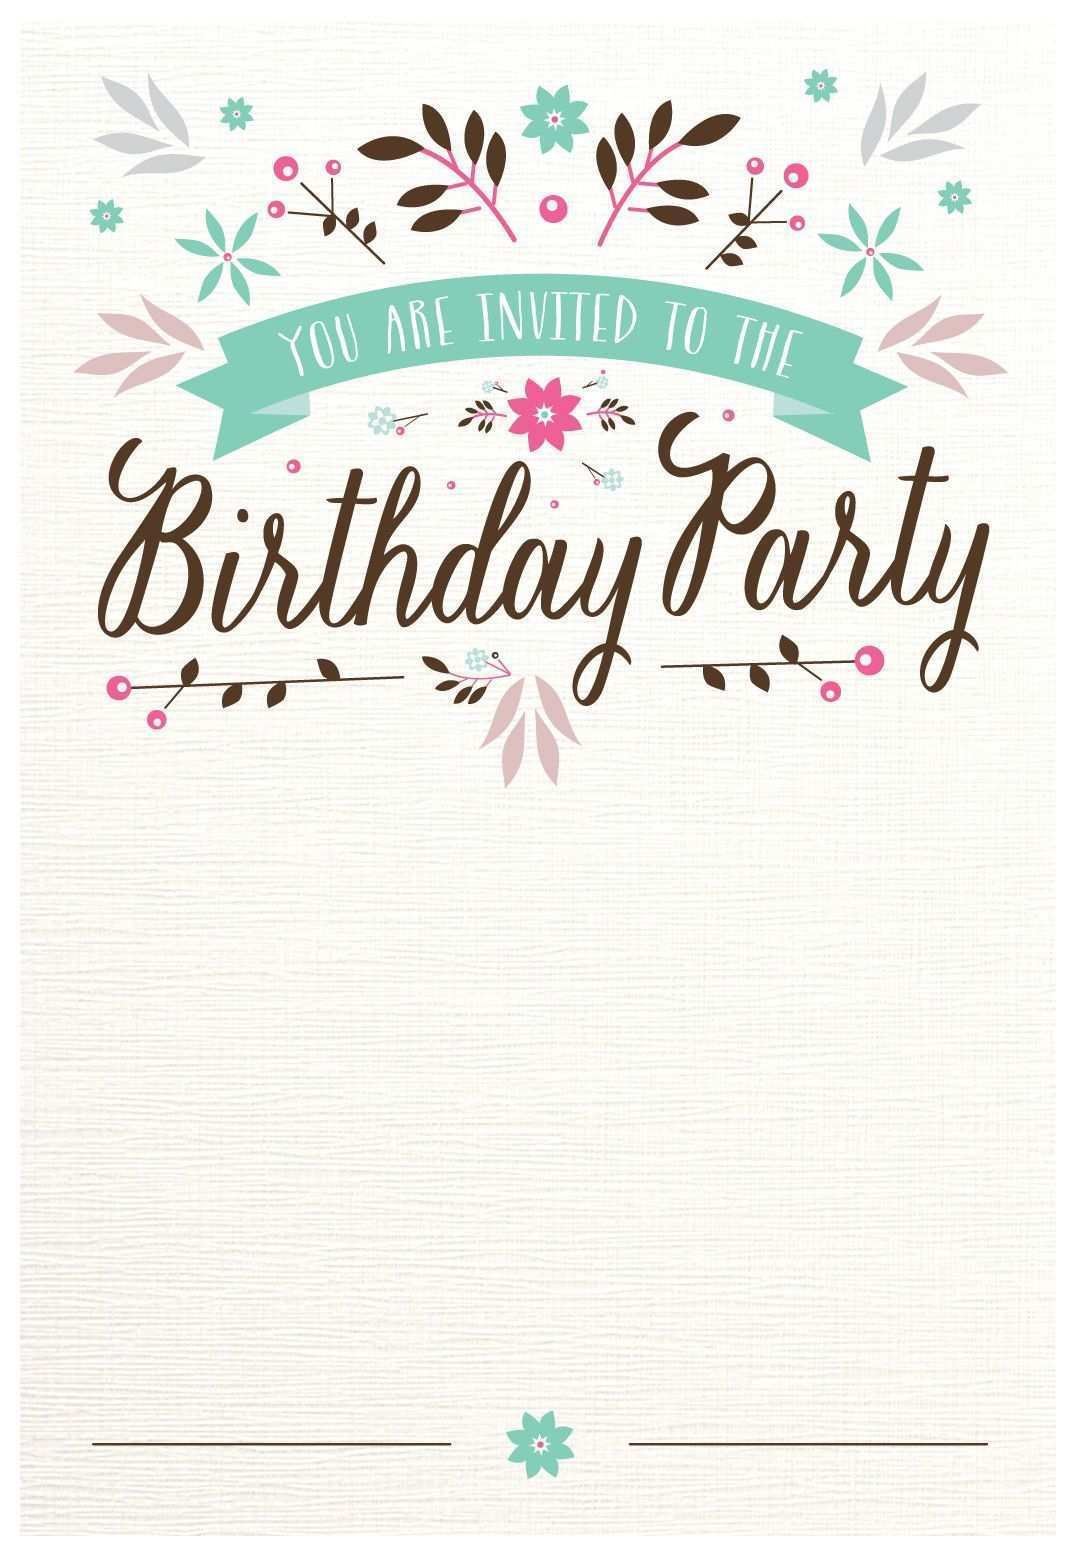 002 Remarkable Free Printable Birthday Card Template For Mac Idea Full